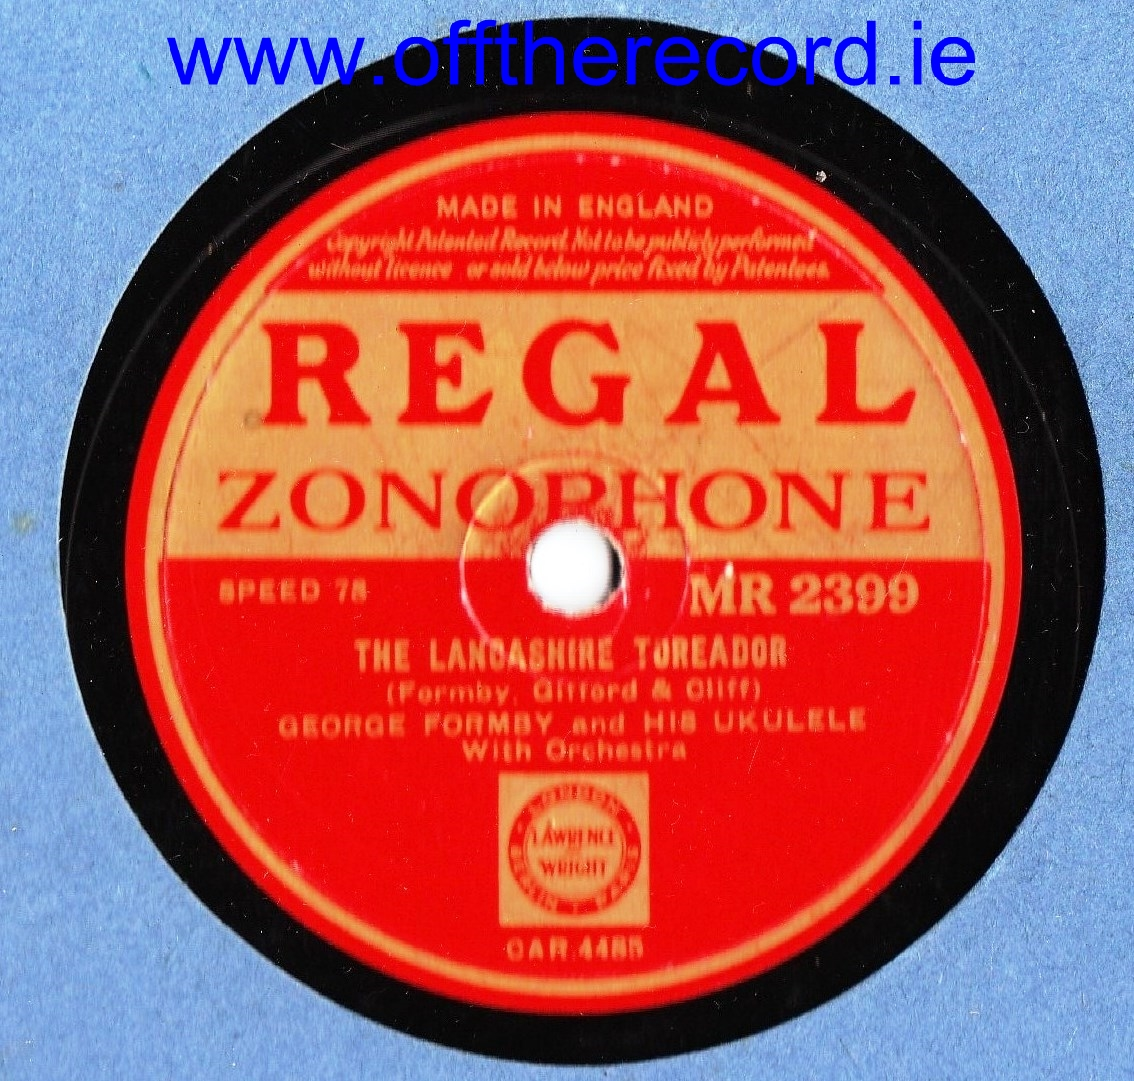 George Formby - The Lancashire Toreador - Regal MR 2399